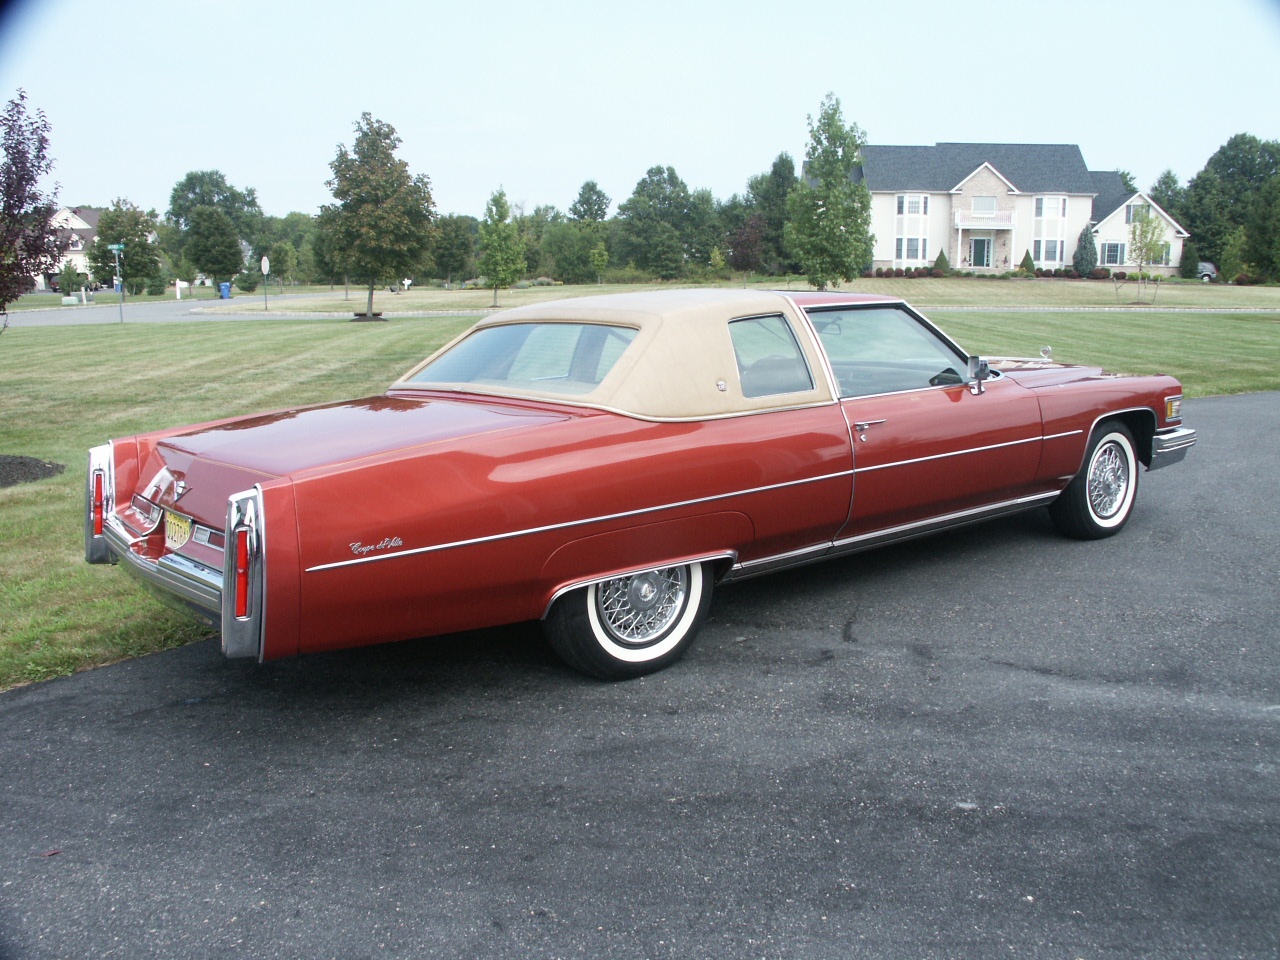 1964 Cadillac Deville likewise Rental 192 additionally Cadillac moreover DSC 7358 also 13959378122. on cadillac coupe deville